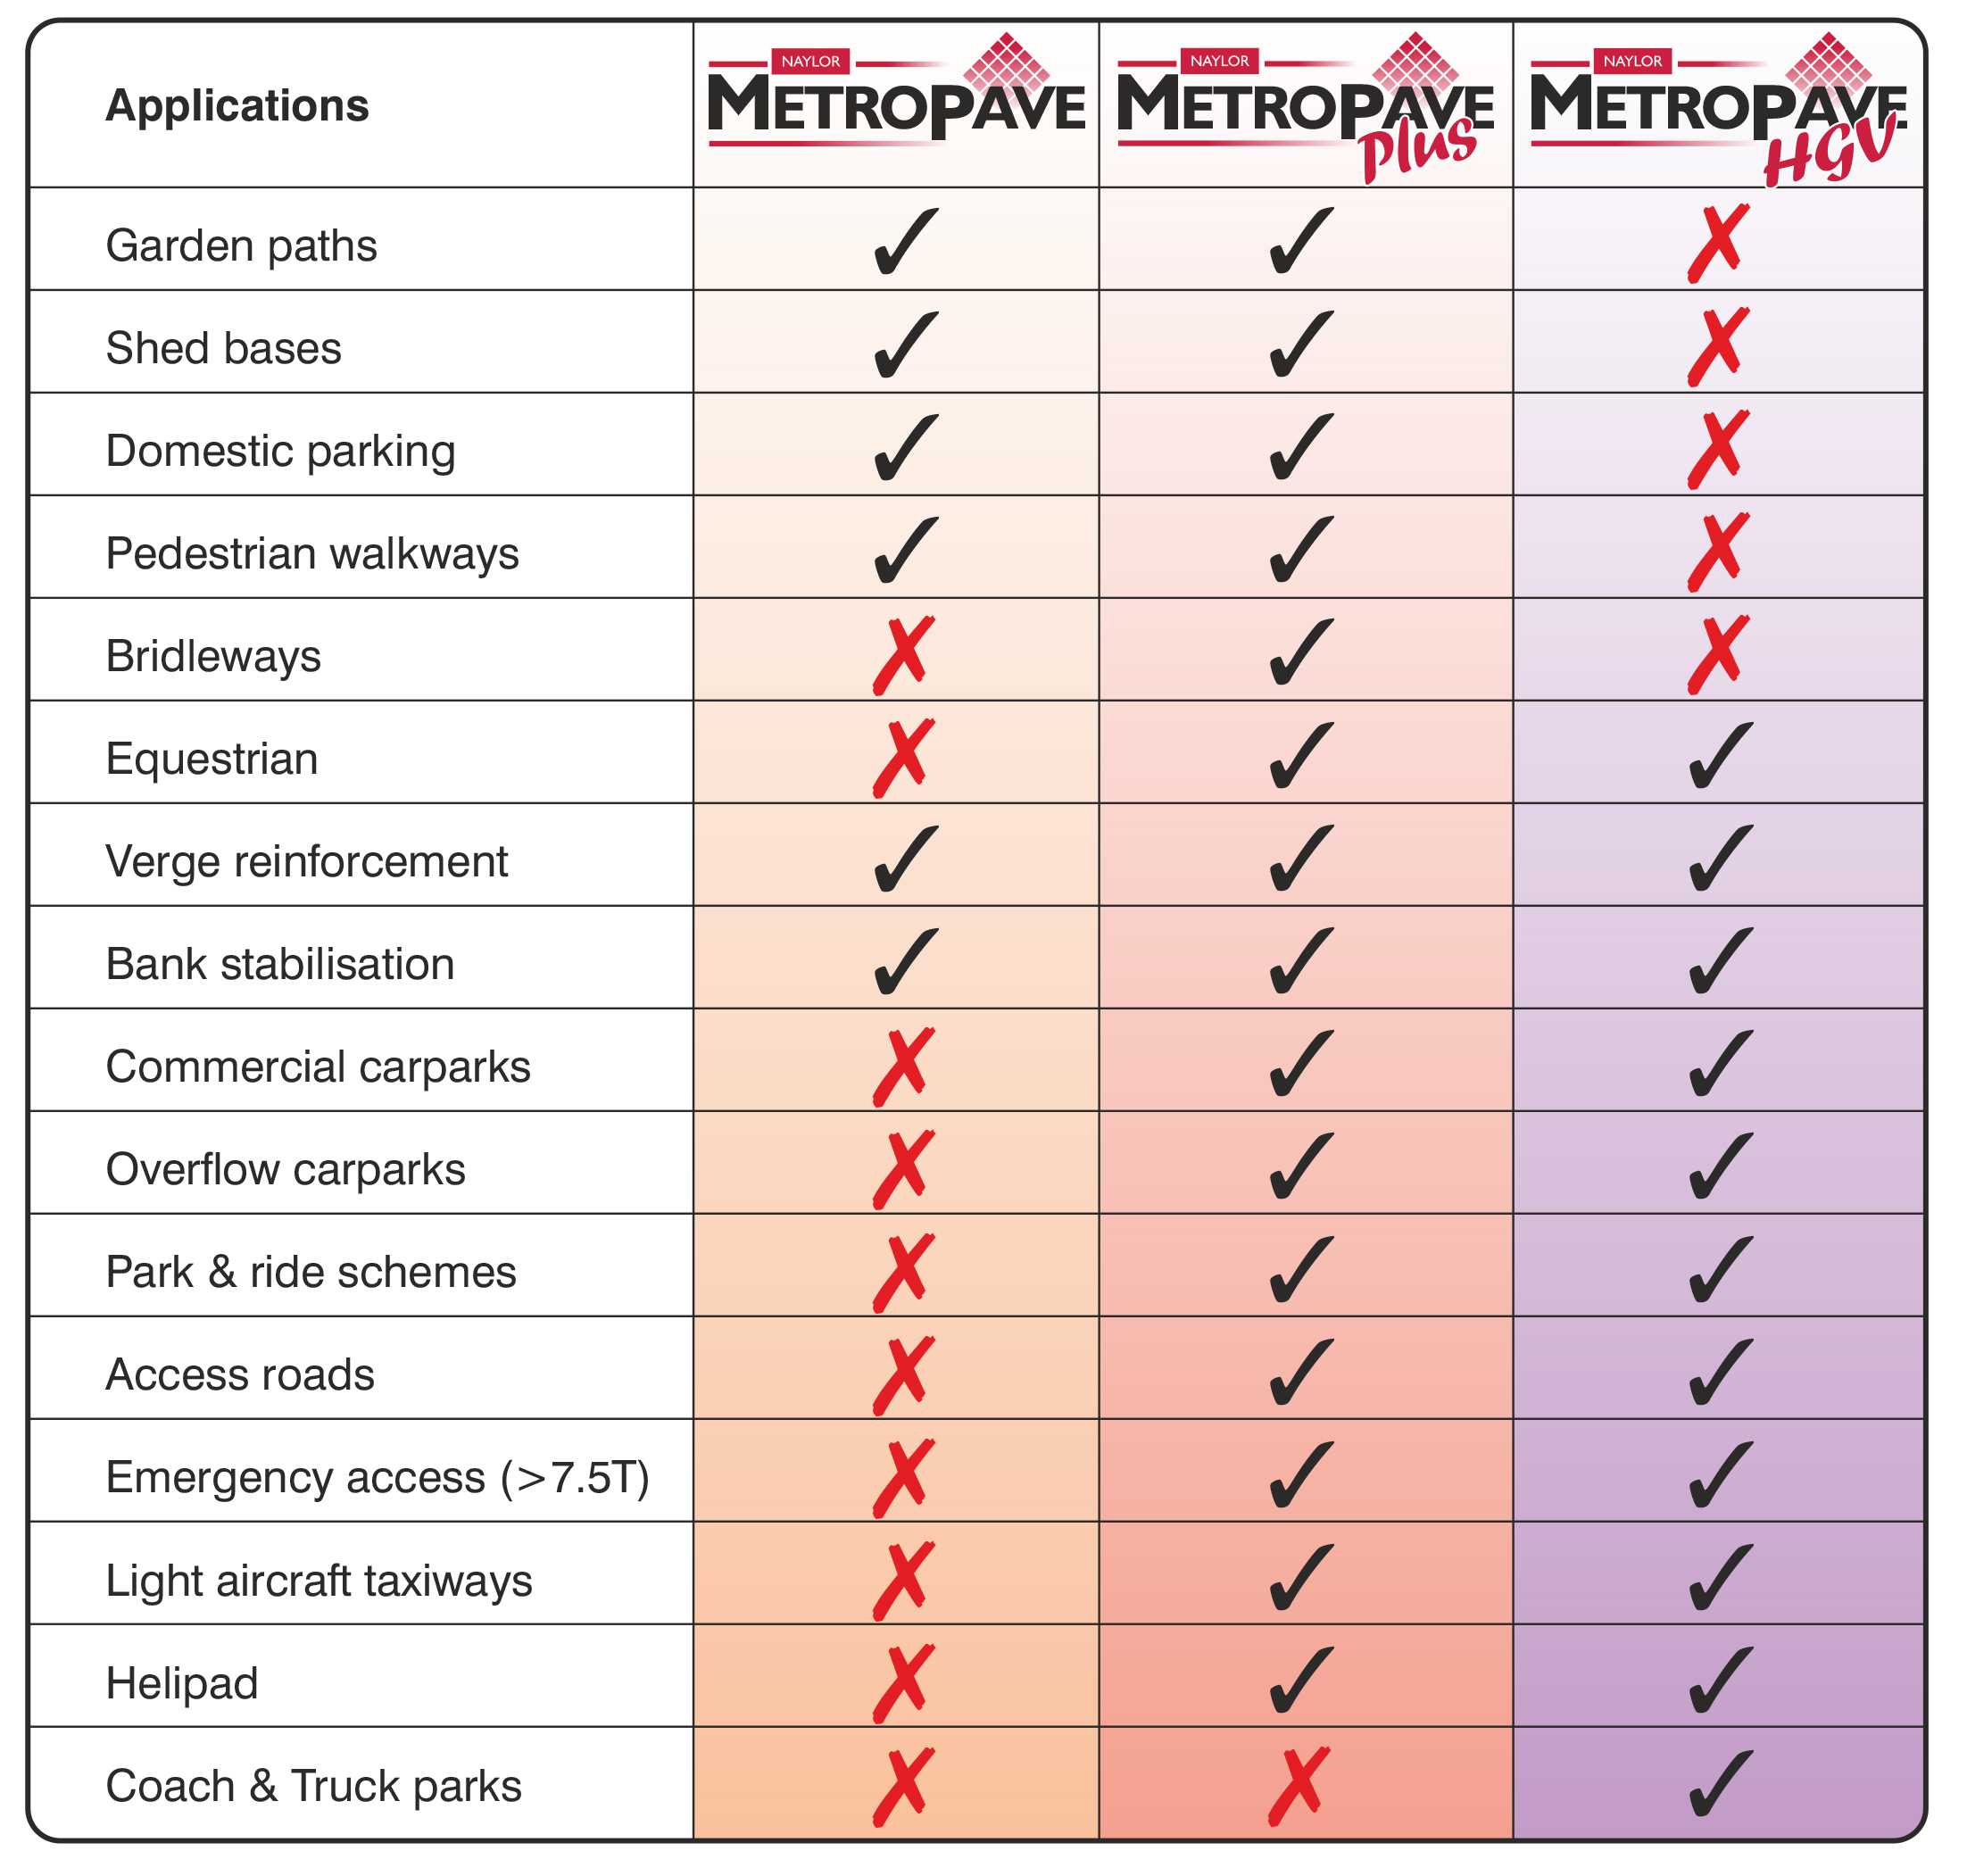 METROPAVE Applications